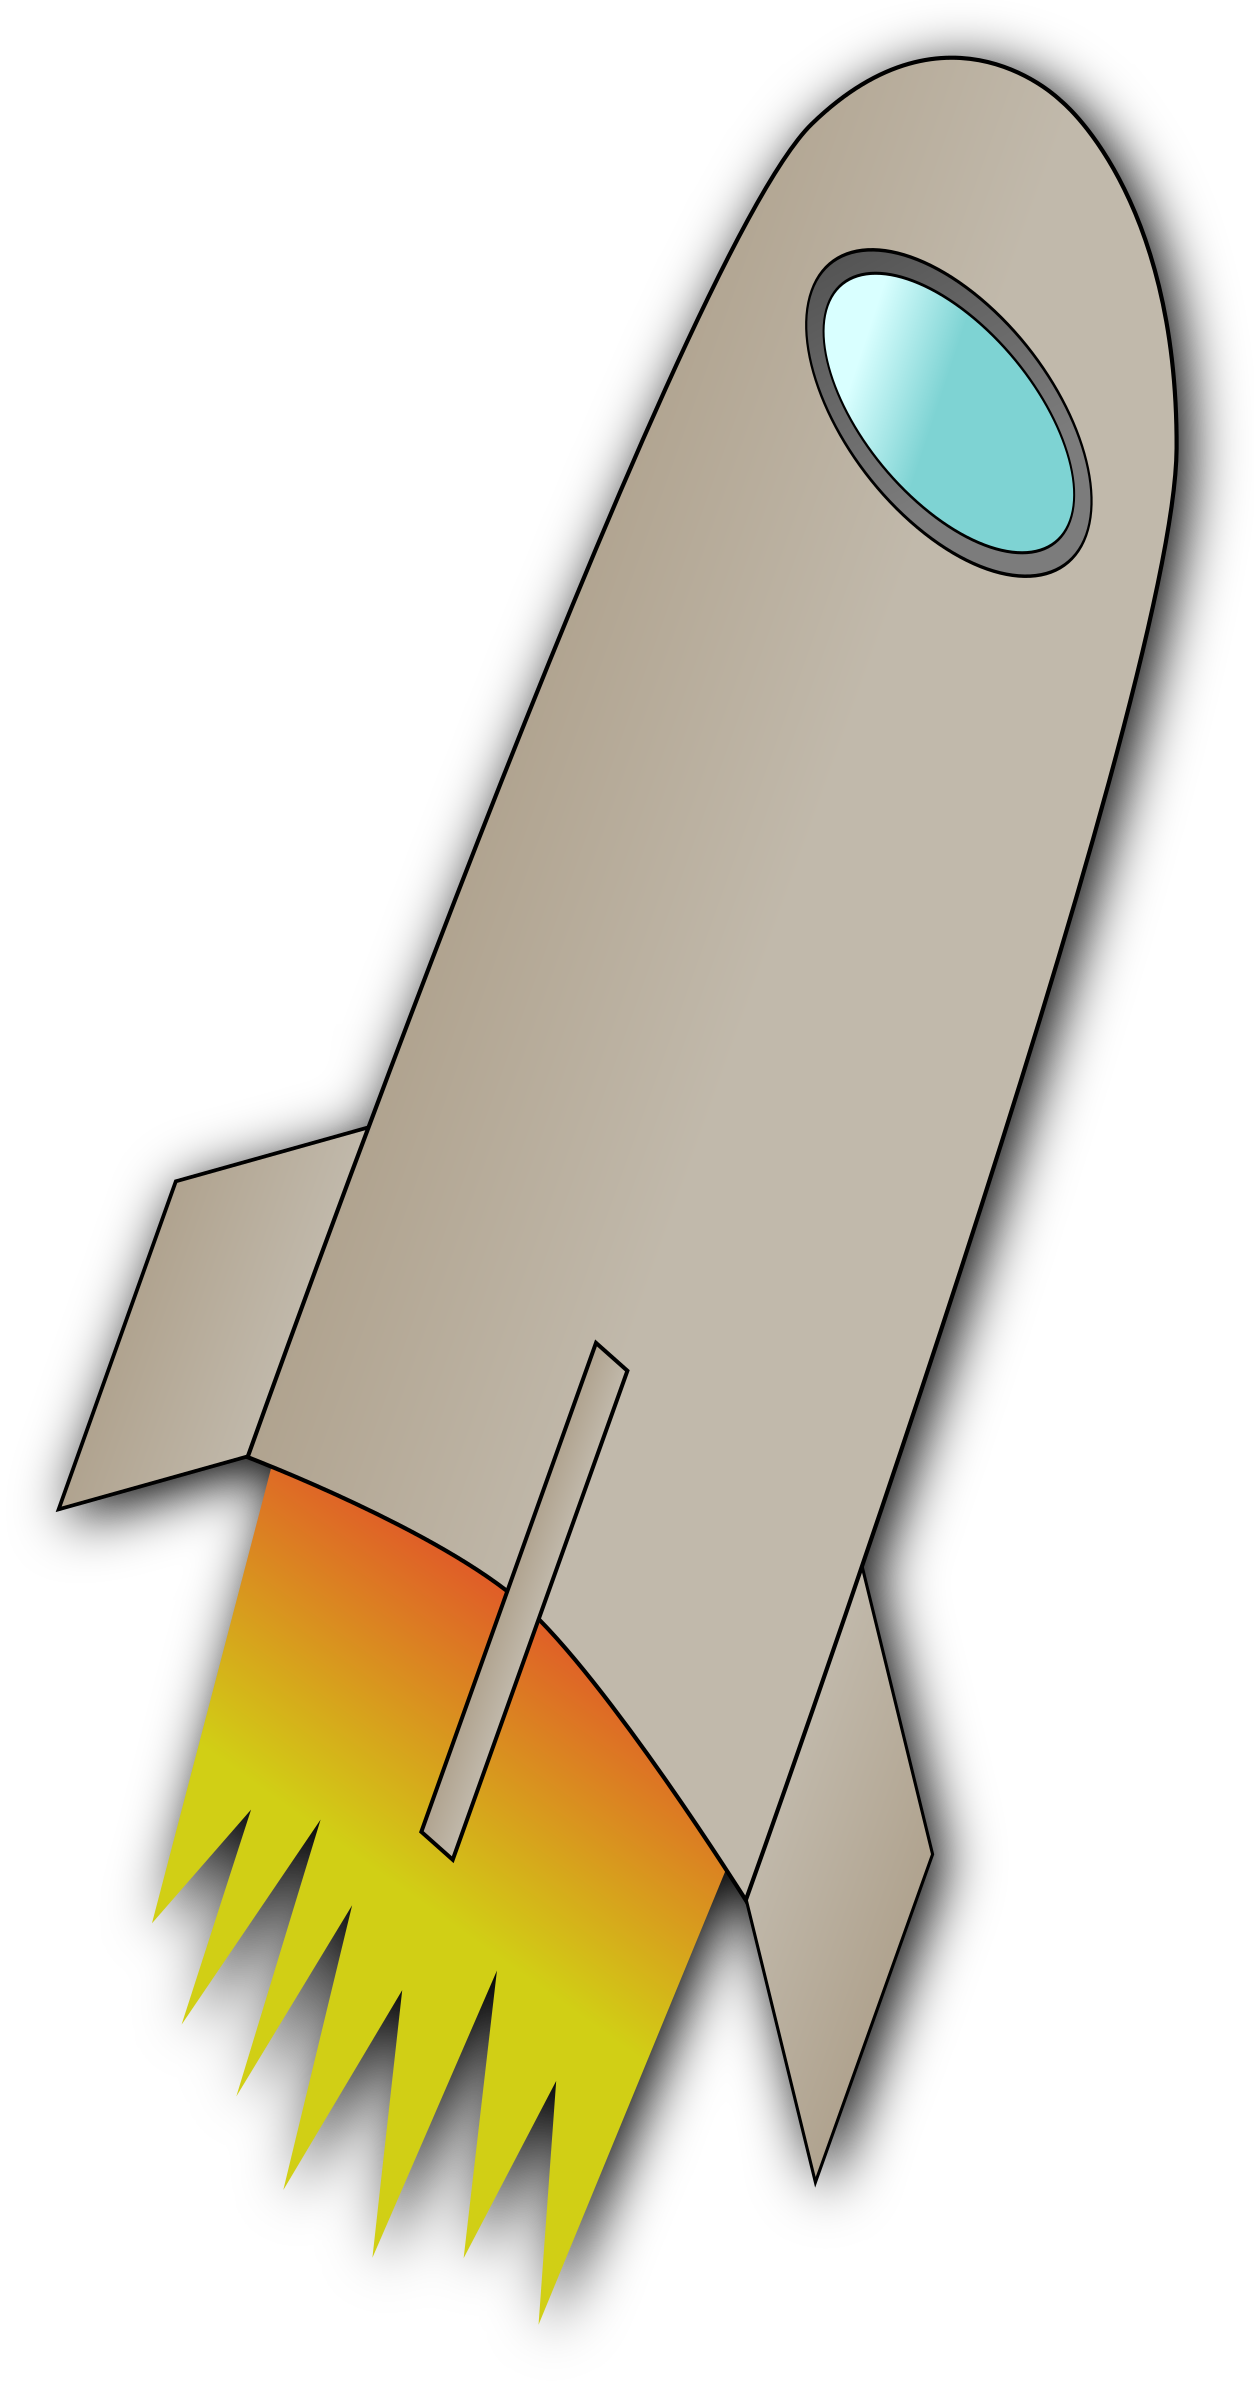 Space Rocket Whit Fire by samden